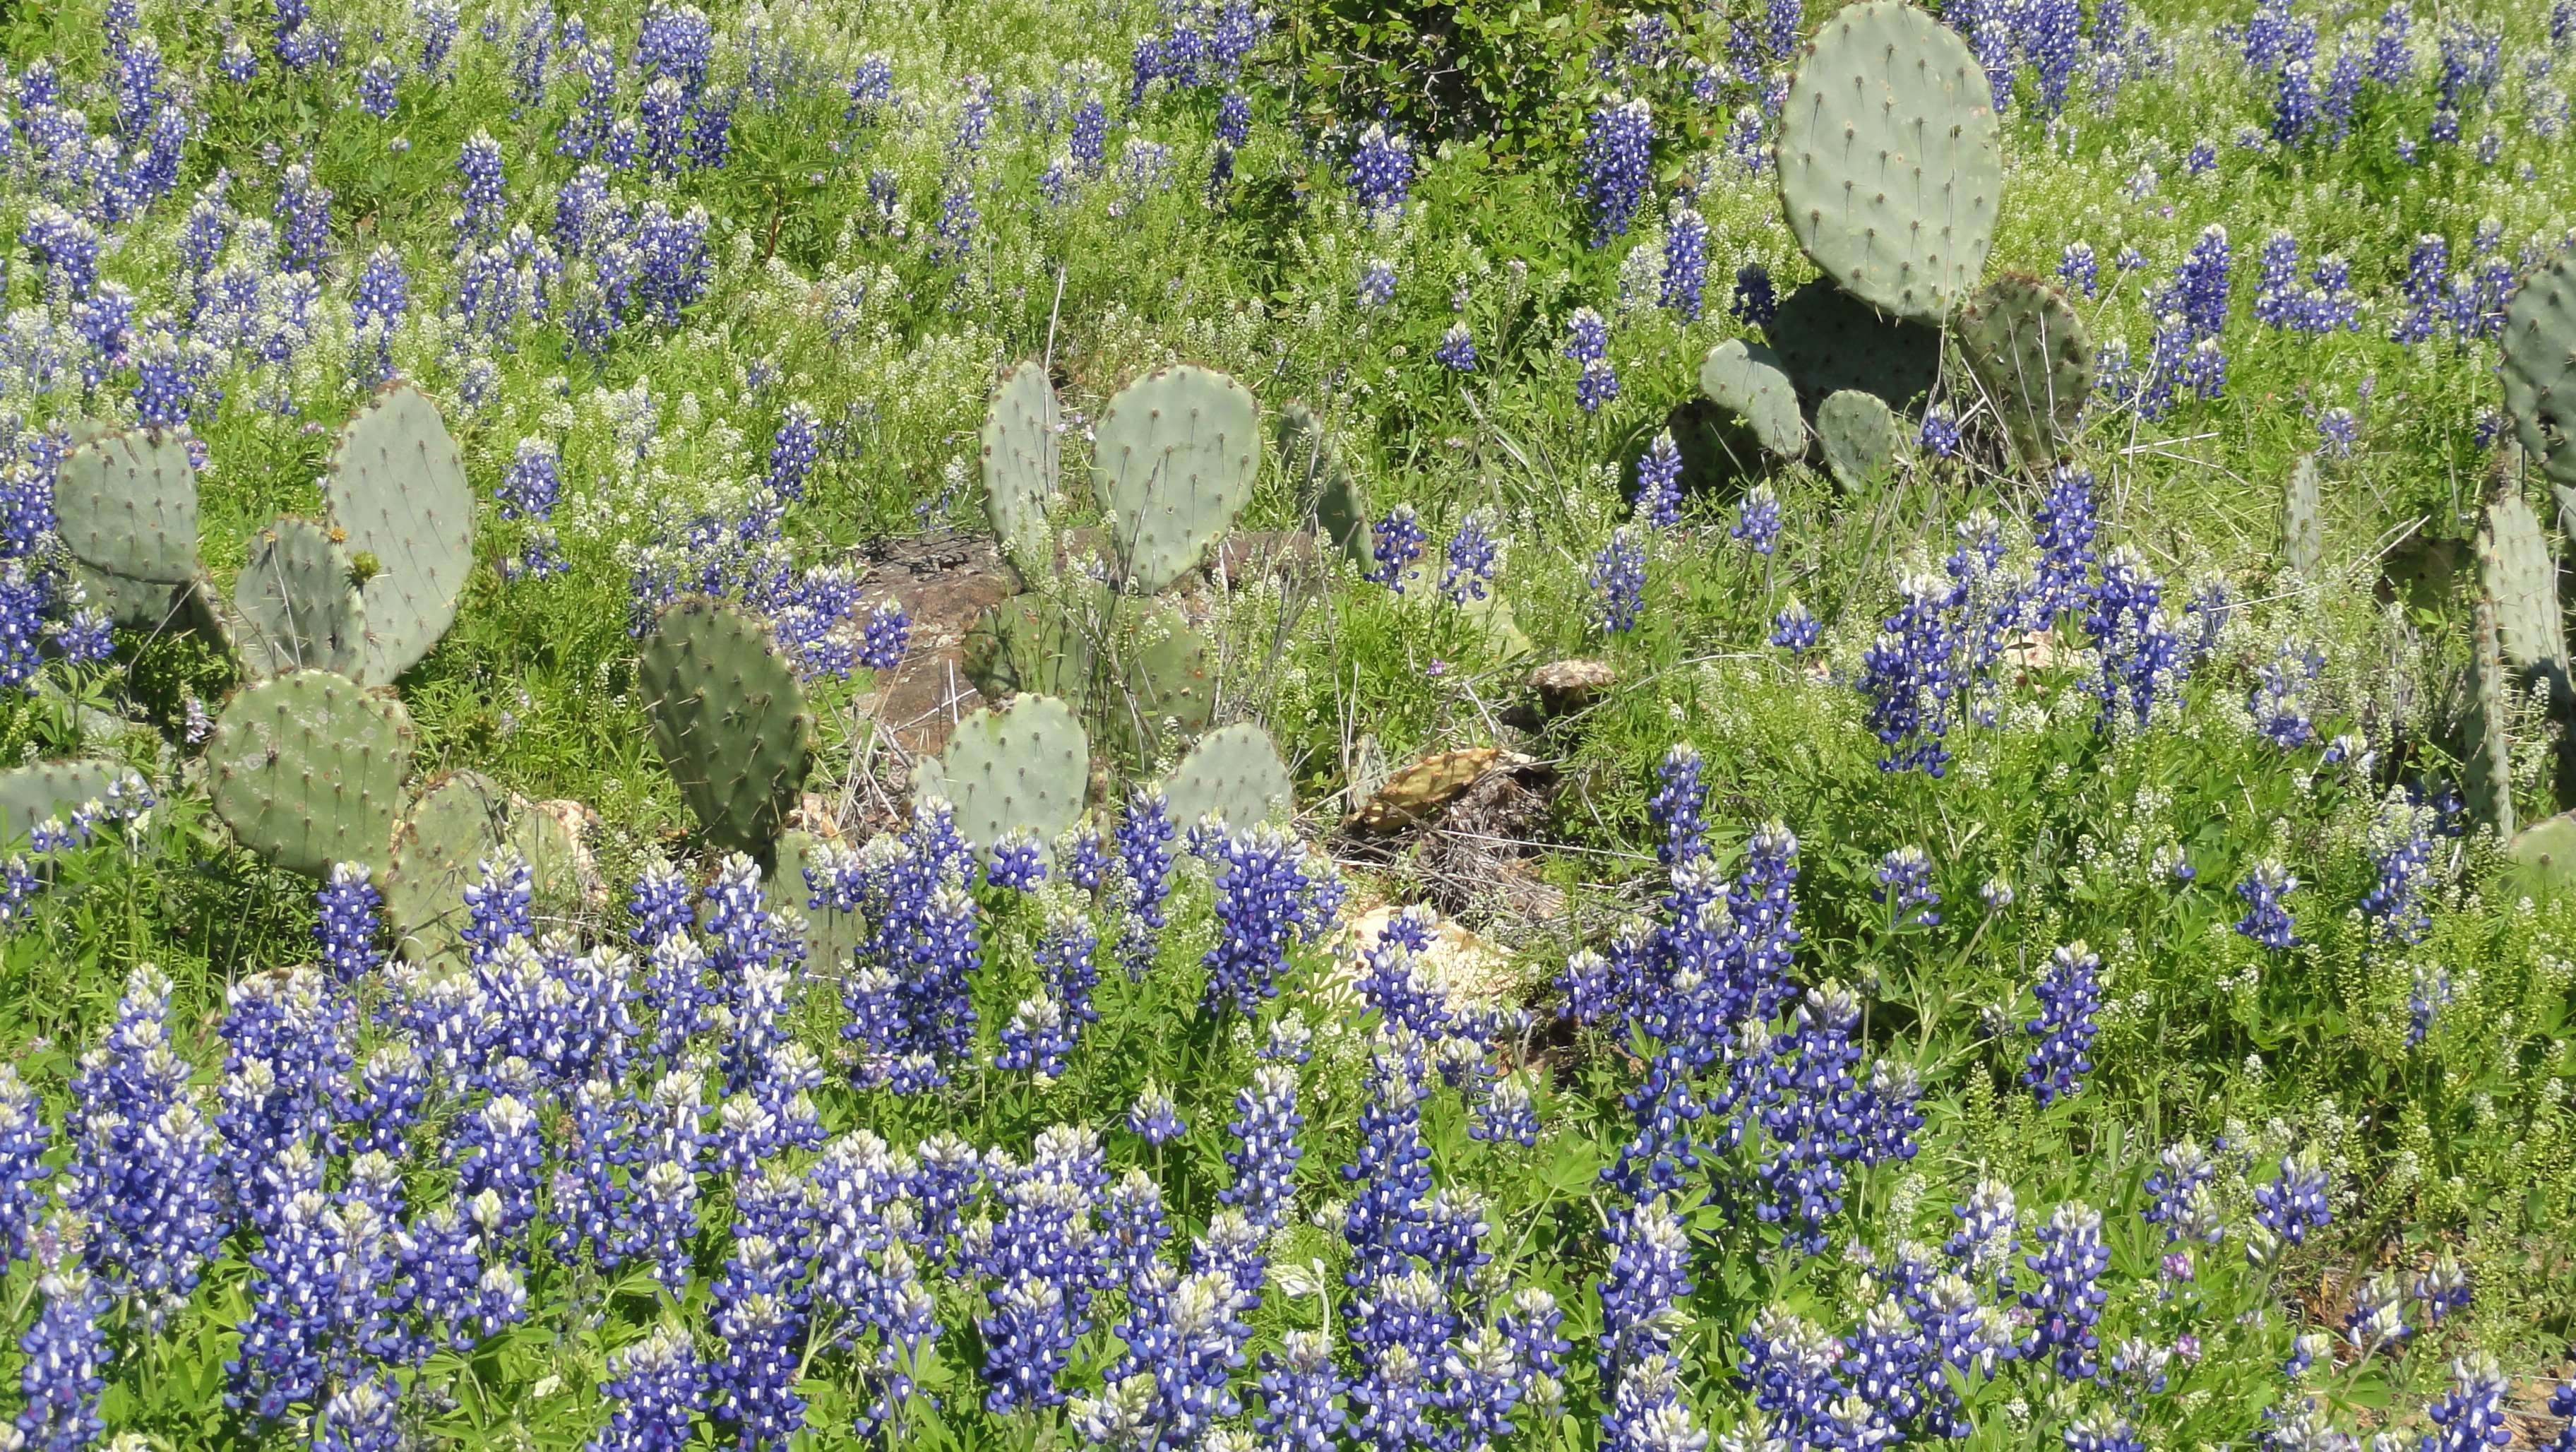 Res: 3648x2056, bluebonnets, cactus, flowers, spring, texas, wildflowers wallpaper and  background